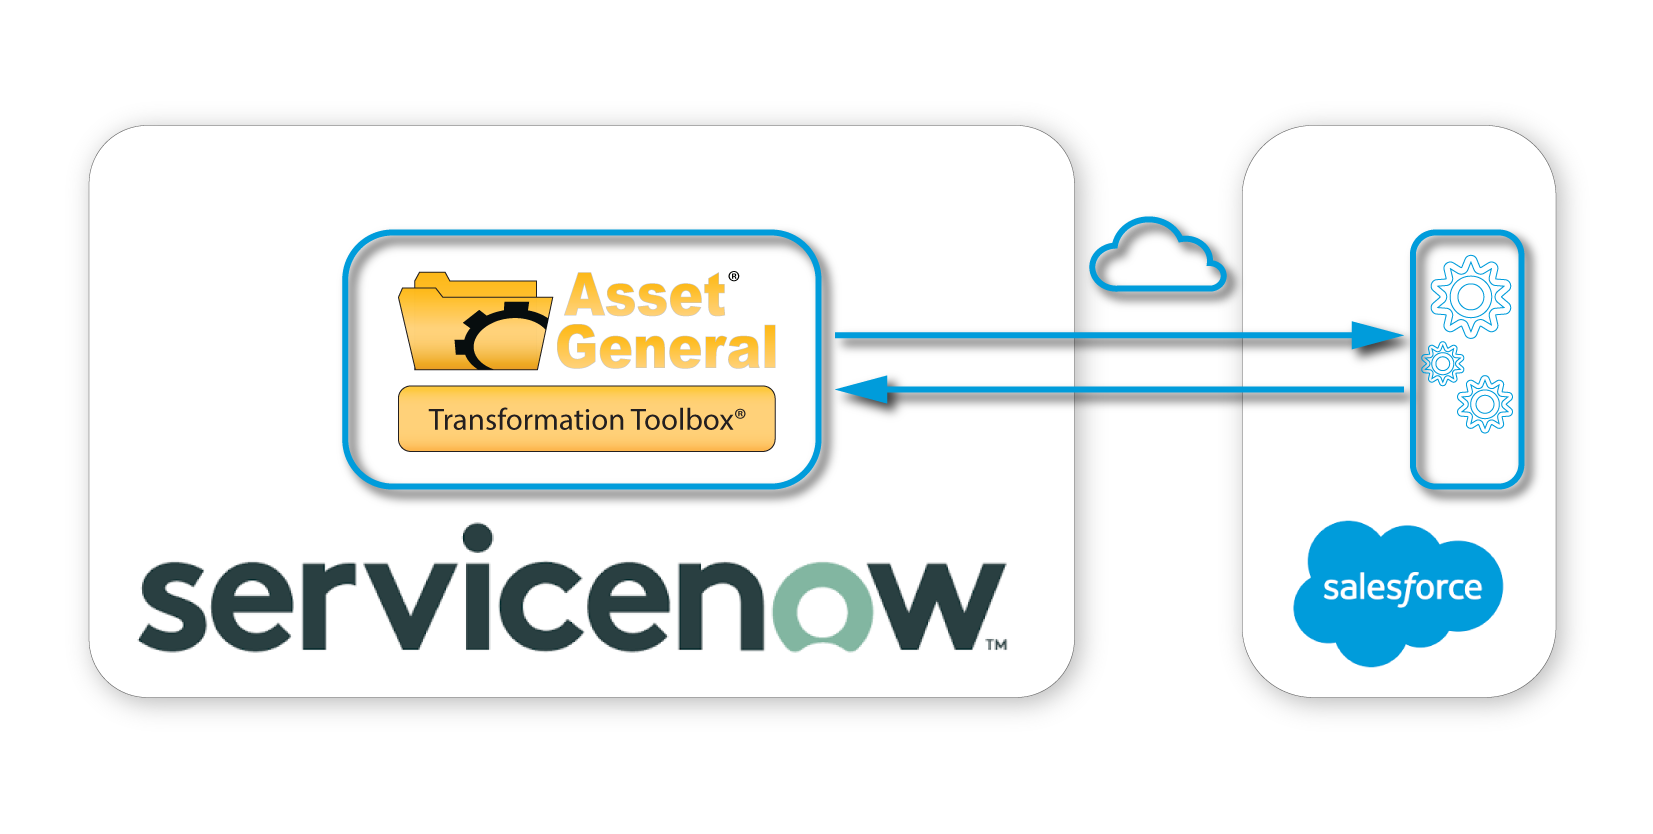 Natively Integrate ServiceNow with Salesforce from the ServiceNow Platform